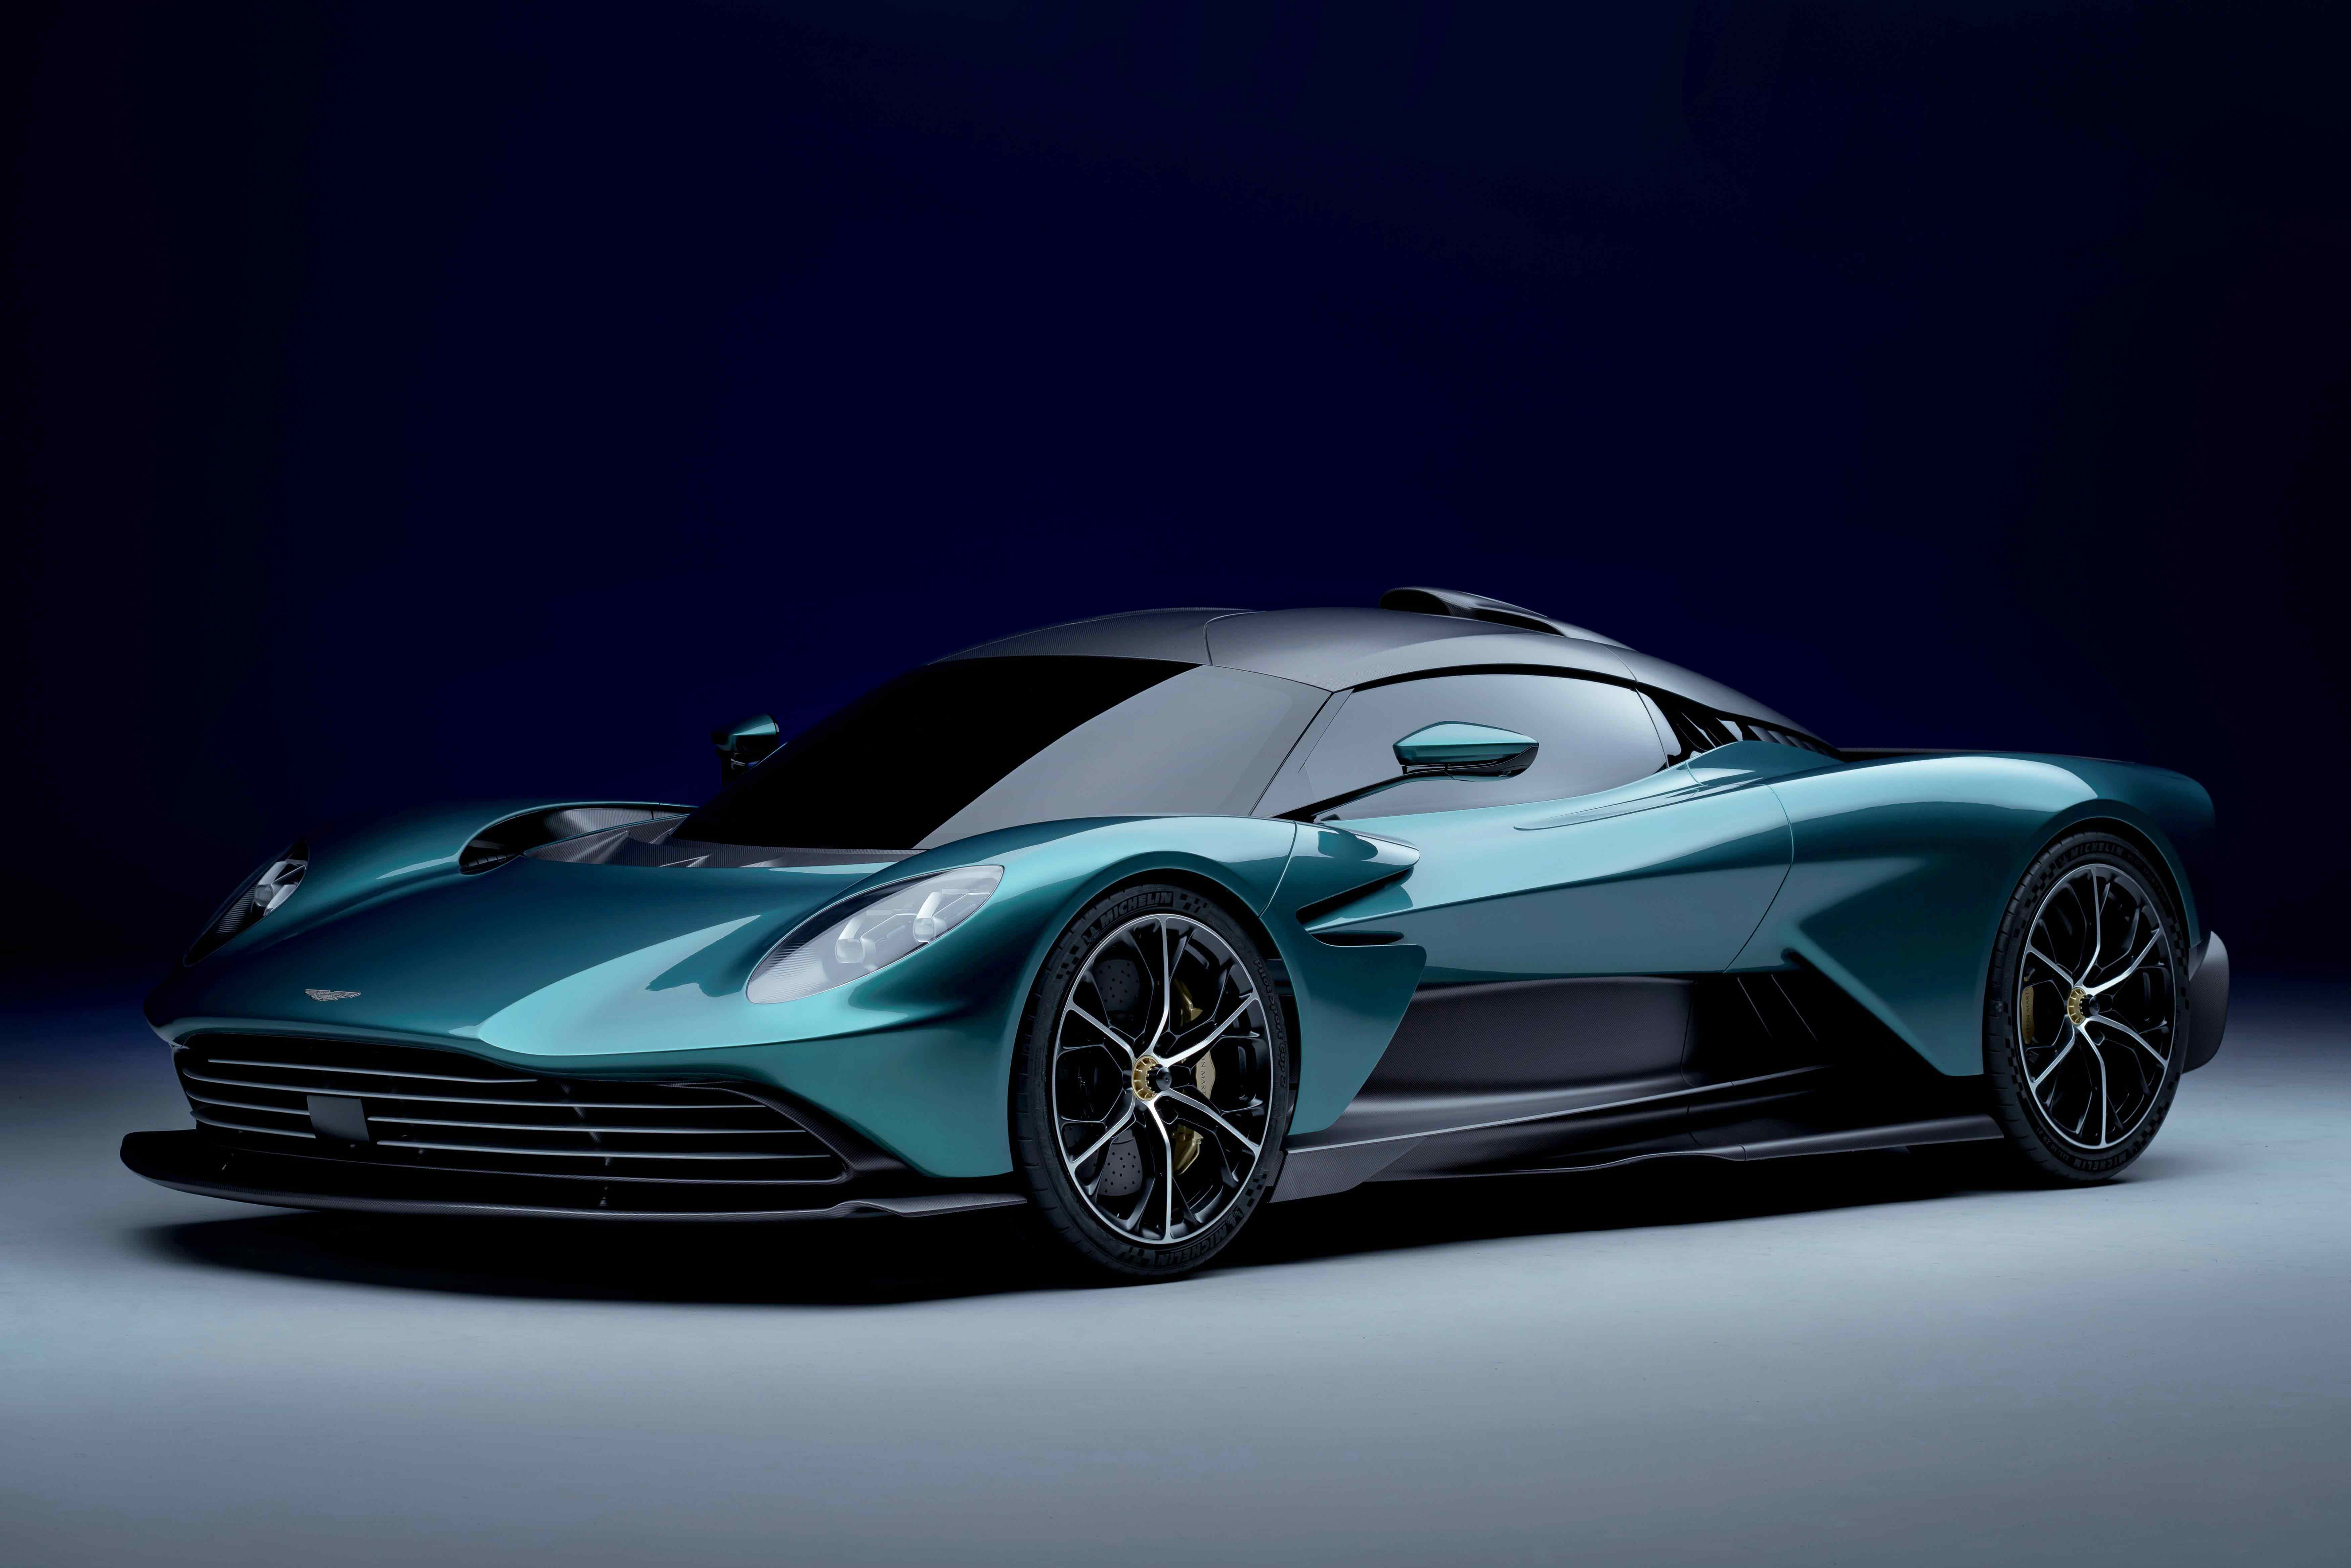 Valhalla Sensational Hybrid Supercar Defines The Mastery Of Driving